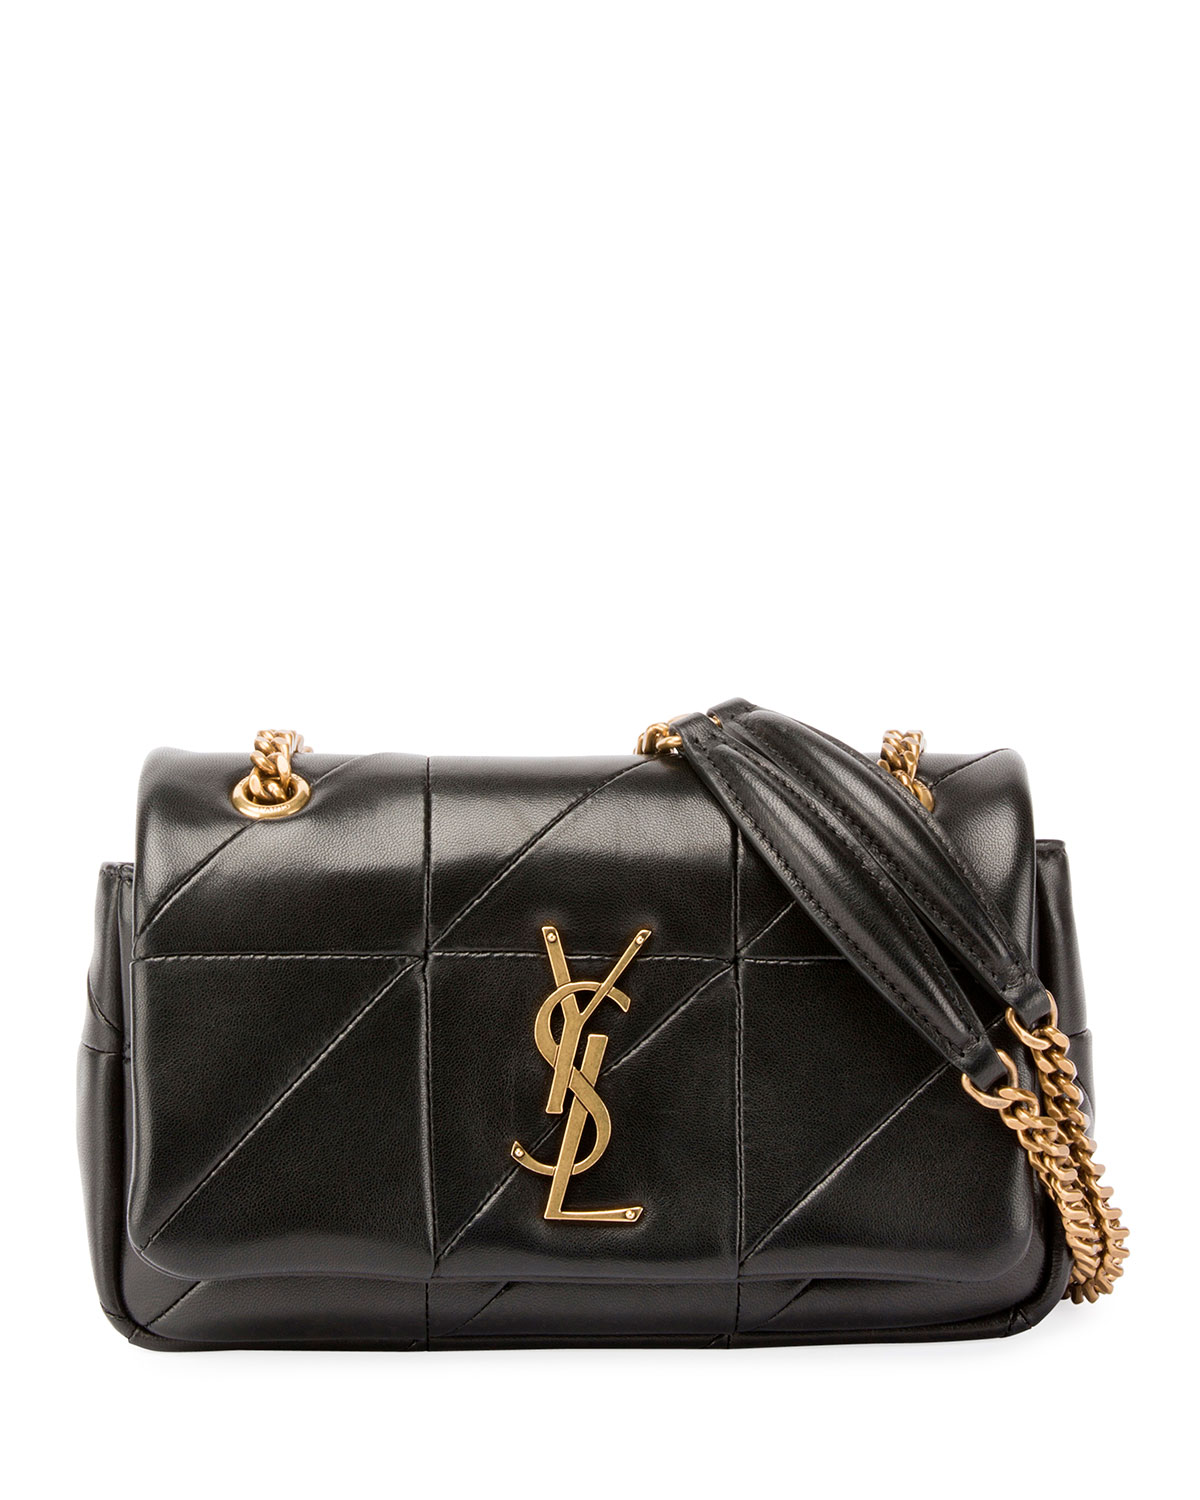 e35ebff751fd Saint LaurentJamie Monogram YSL Small Diamond-Quilted Chain Shoulder Bag